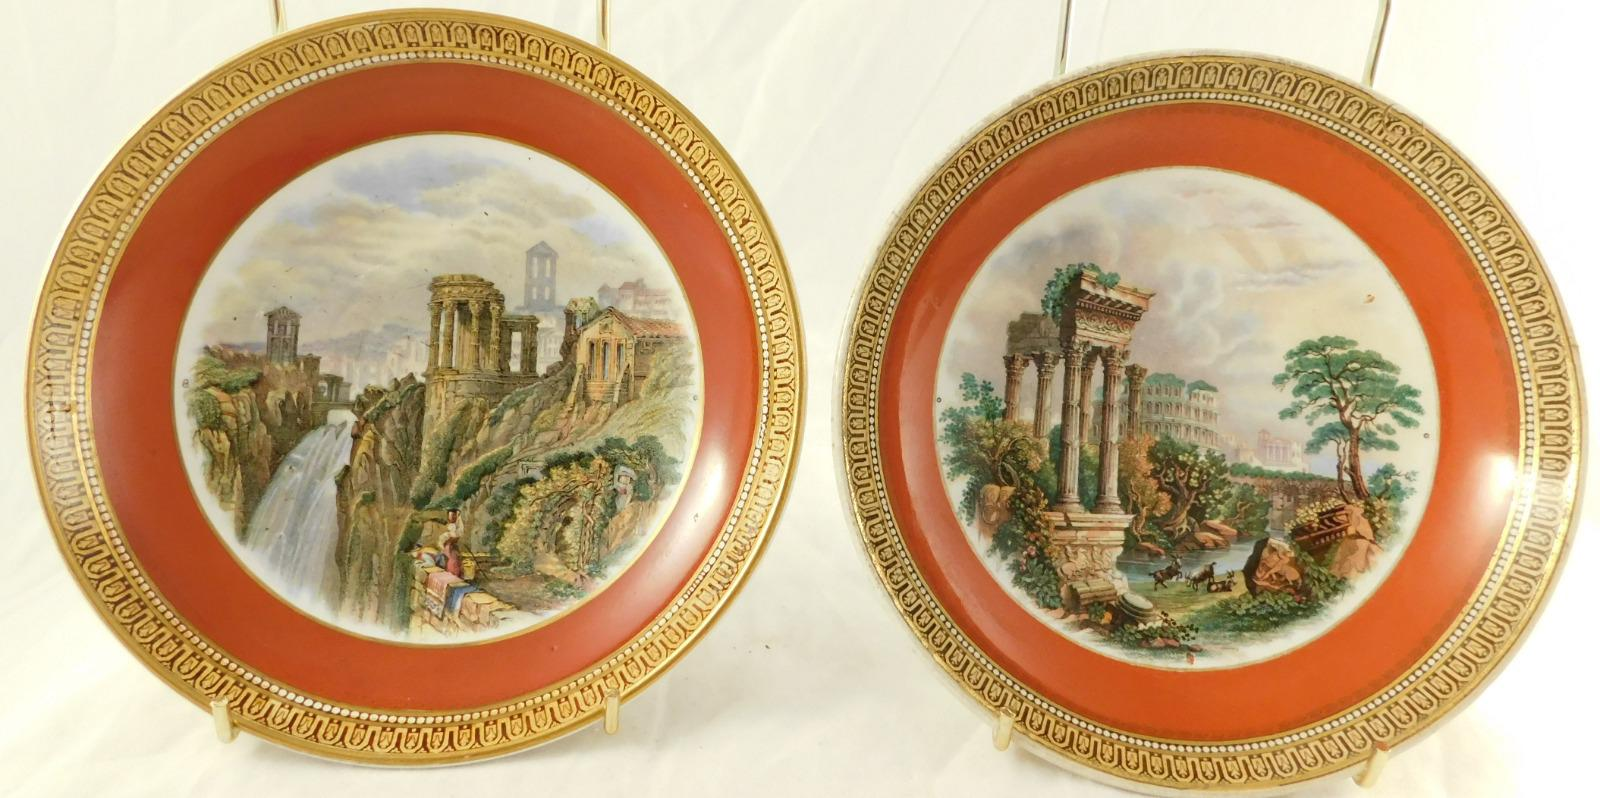 Pair of 19th Century Prattware Dishes (1 of 1)